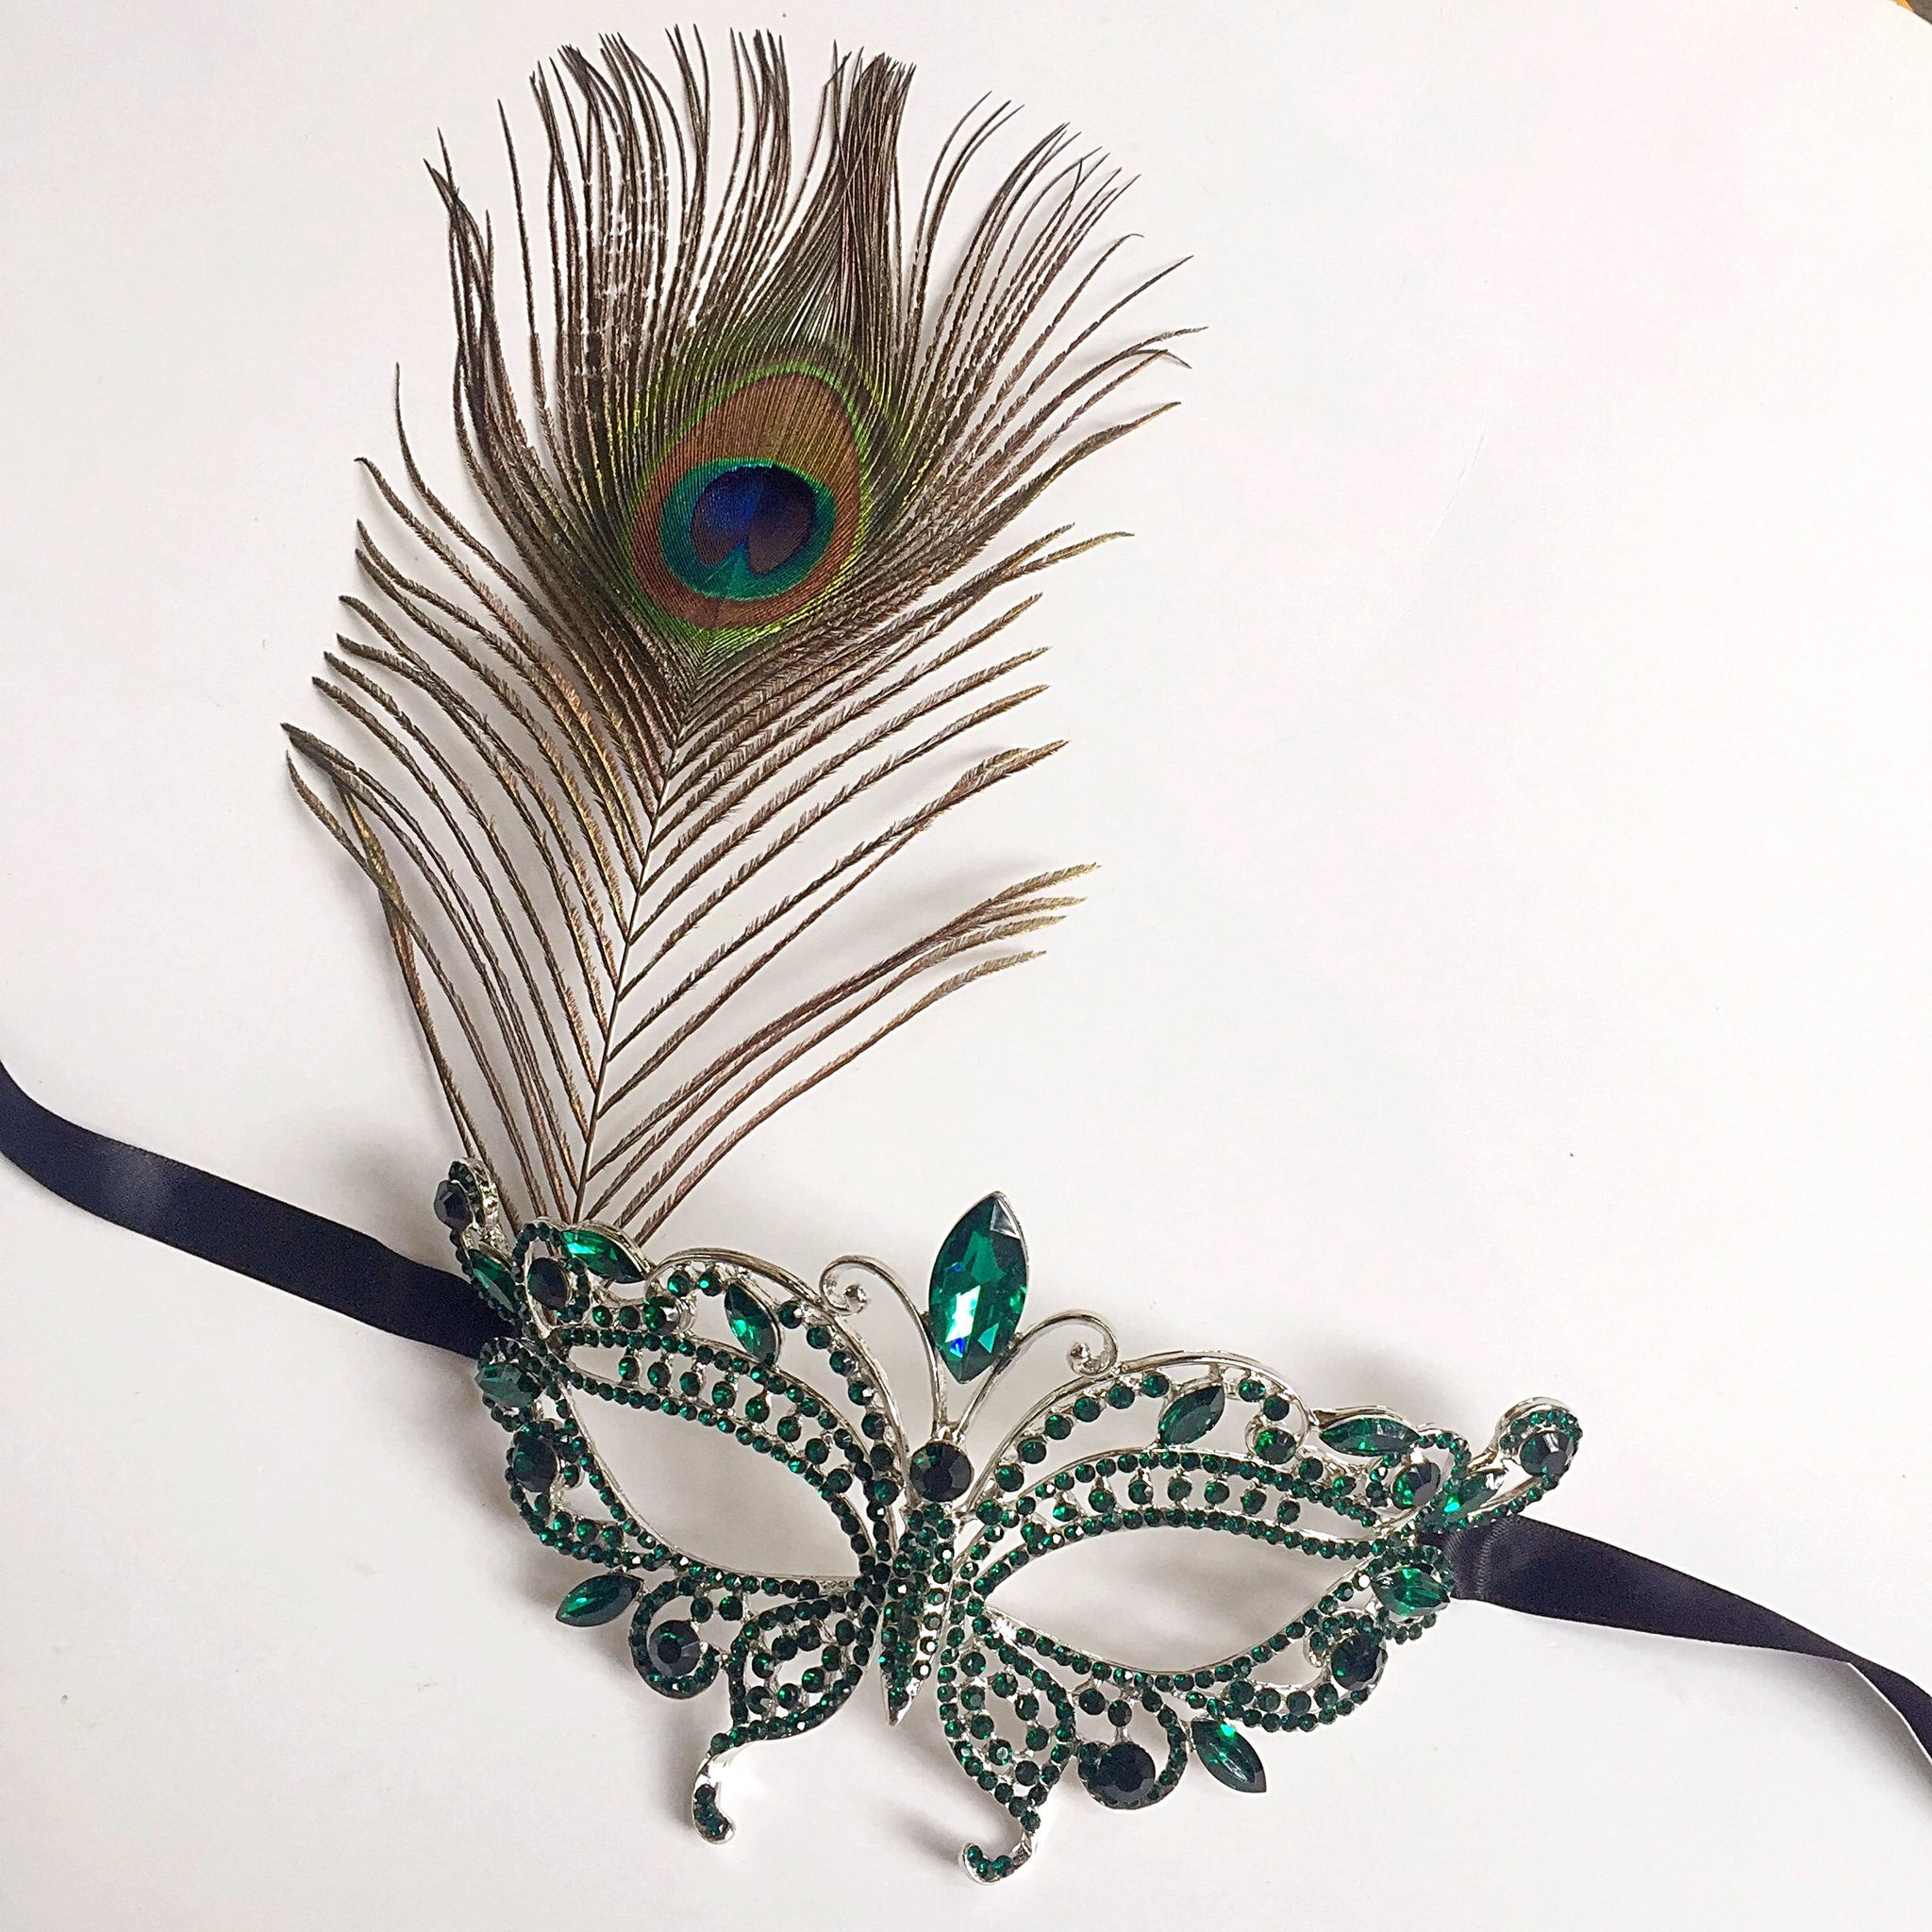 Green Masquerade Mask with Peacock Feather, Venetian Masquerade Carnival Party Eye Mask